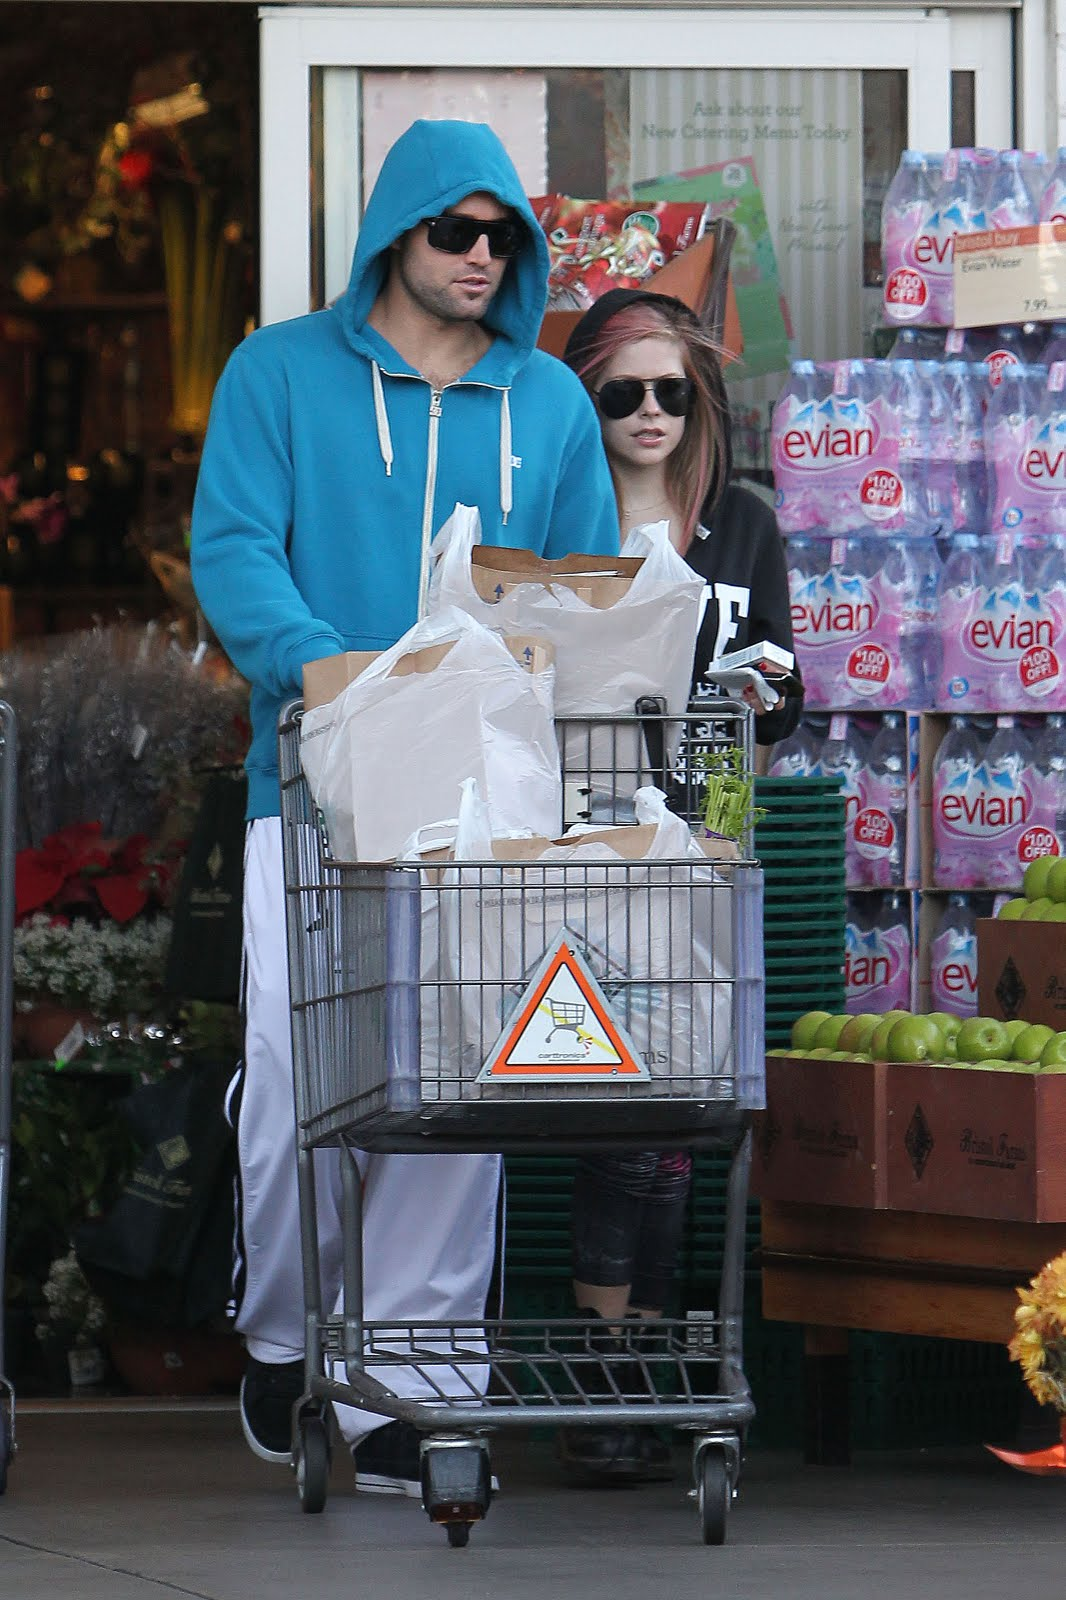 Was brody dating avril during the hills